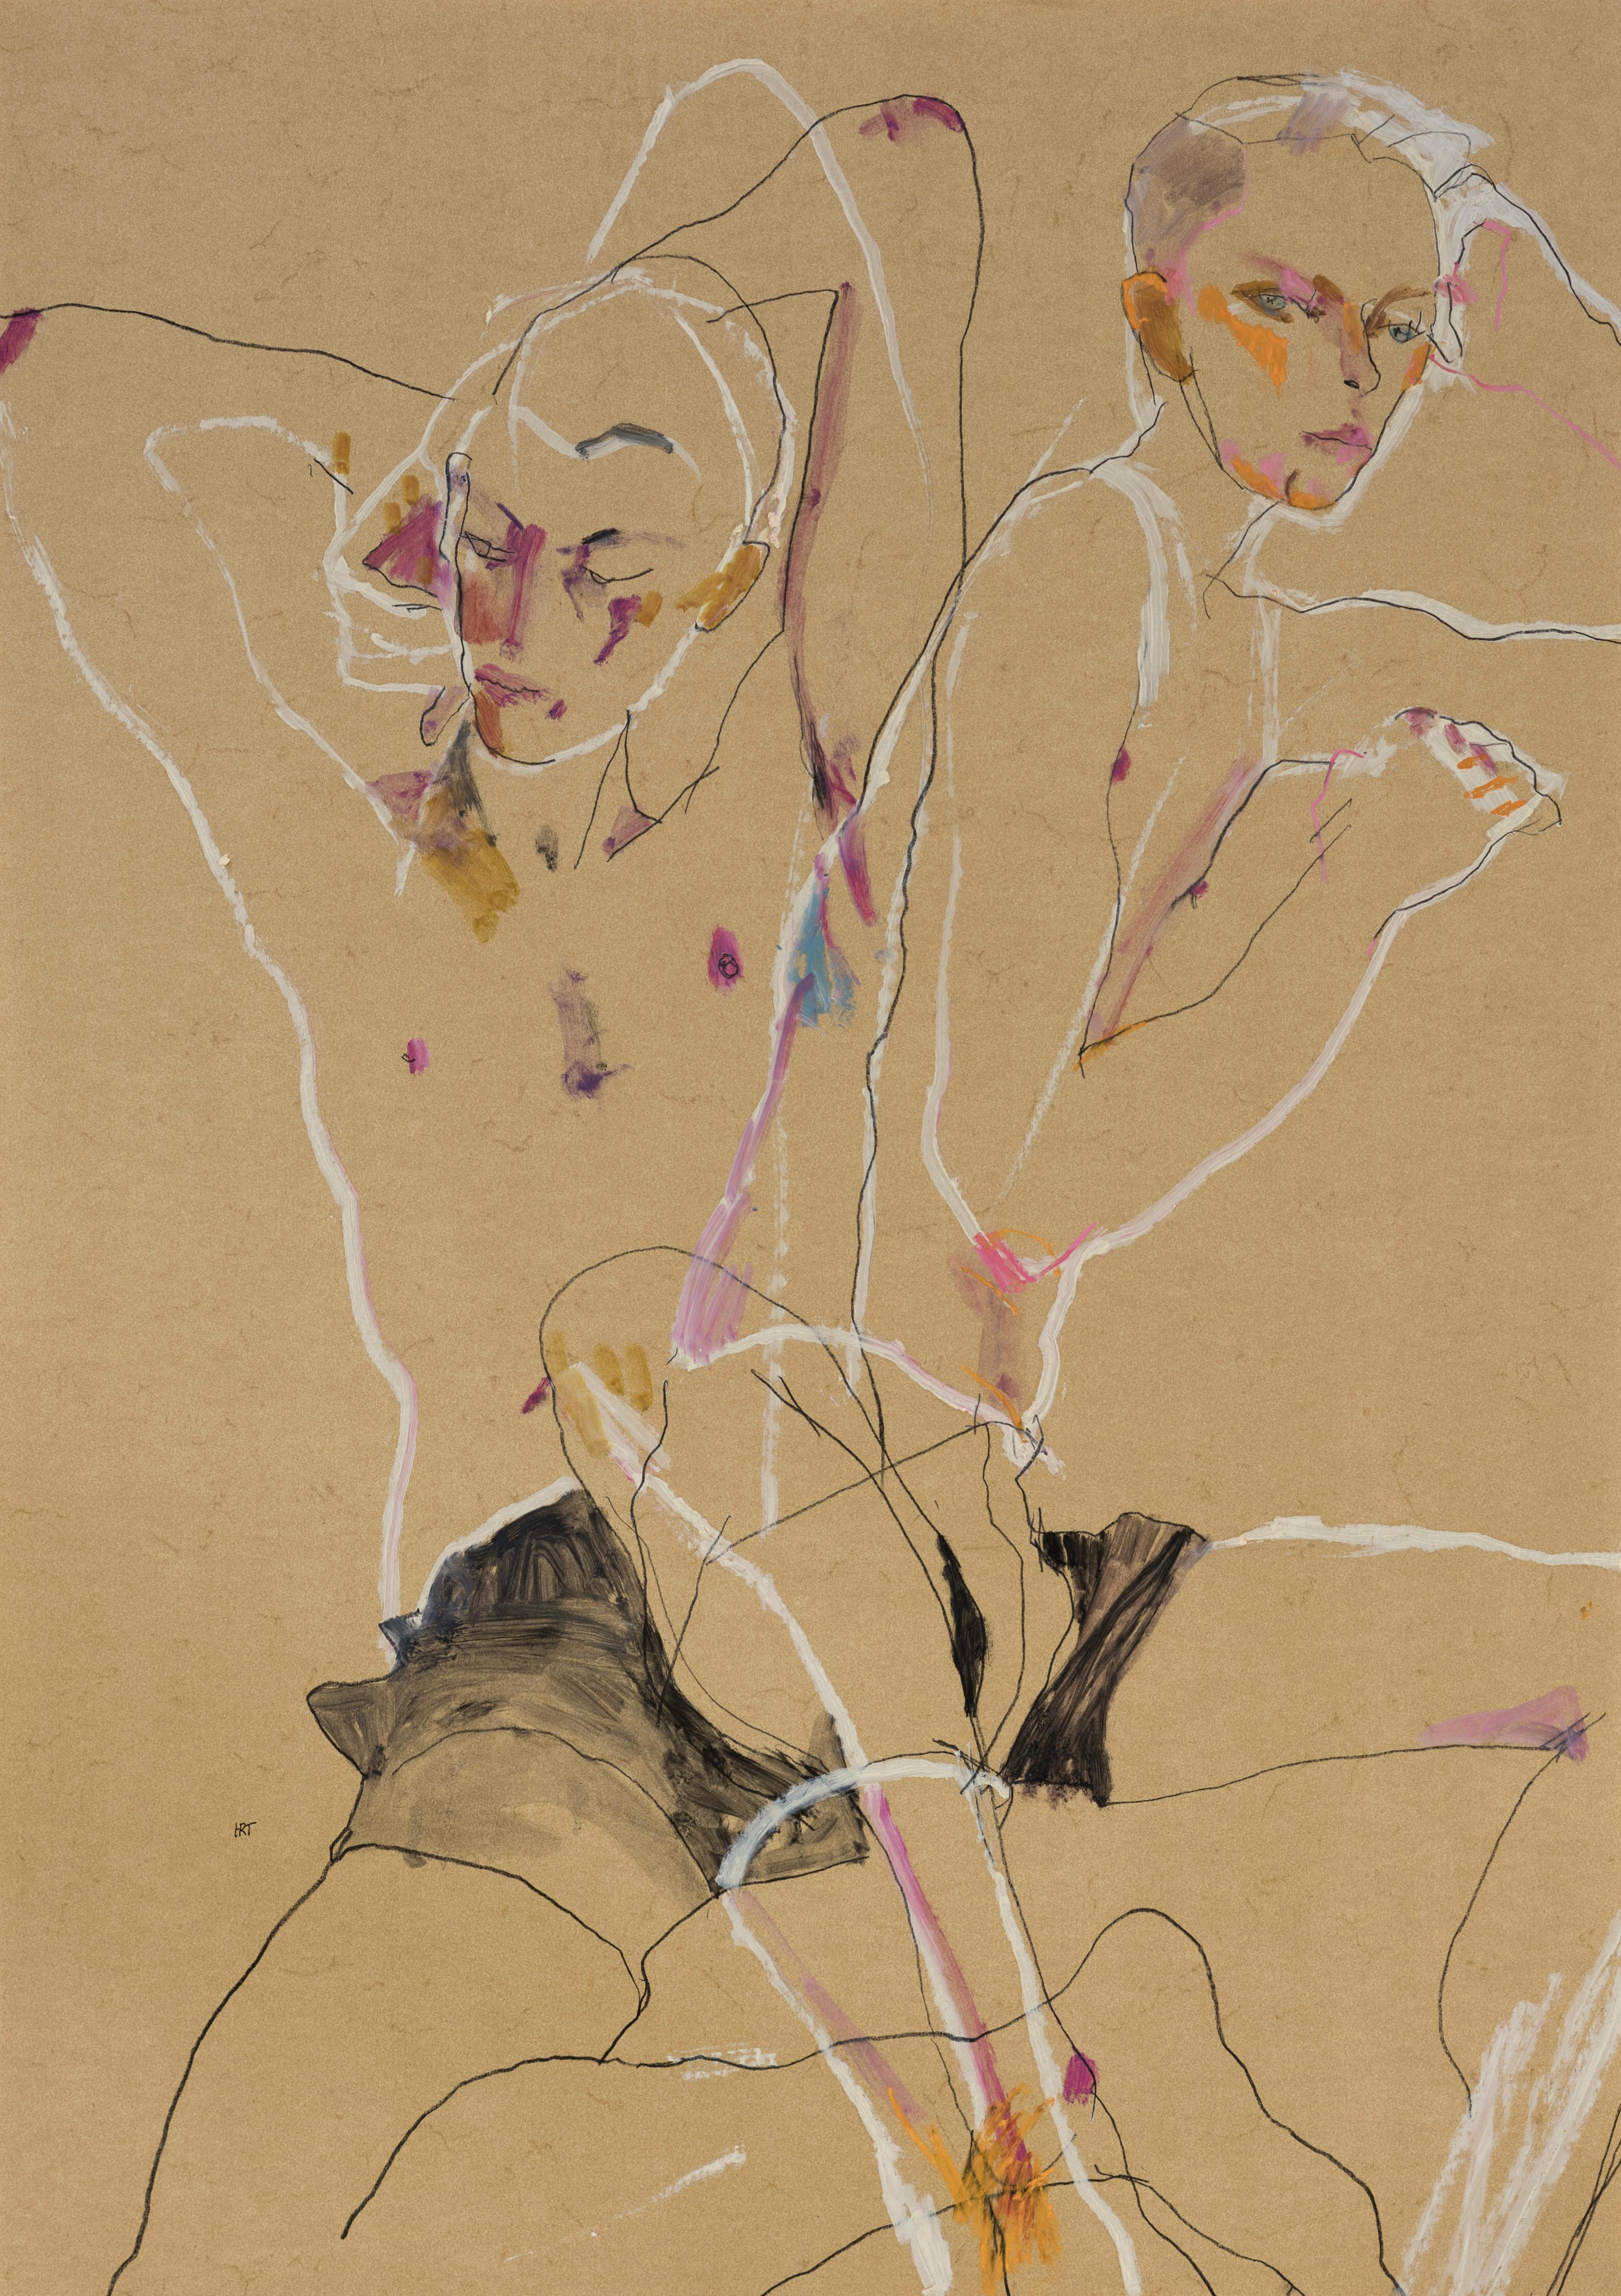 Matthew (Two Figures, Overlapping), Mixed media on ochre parchment